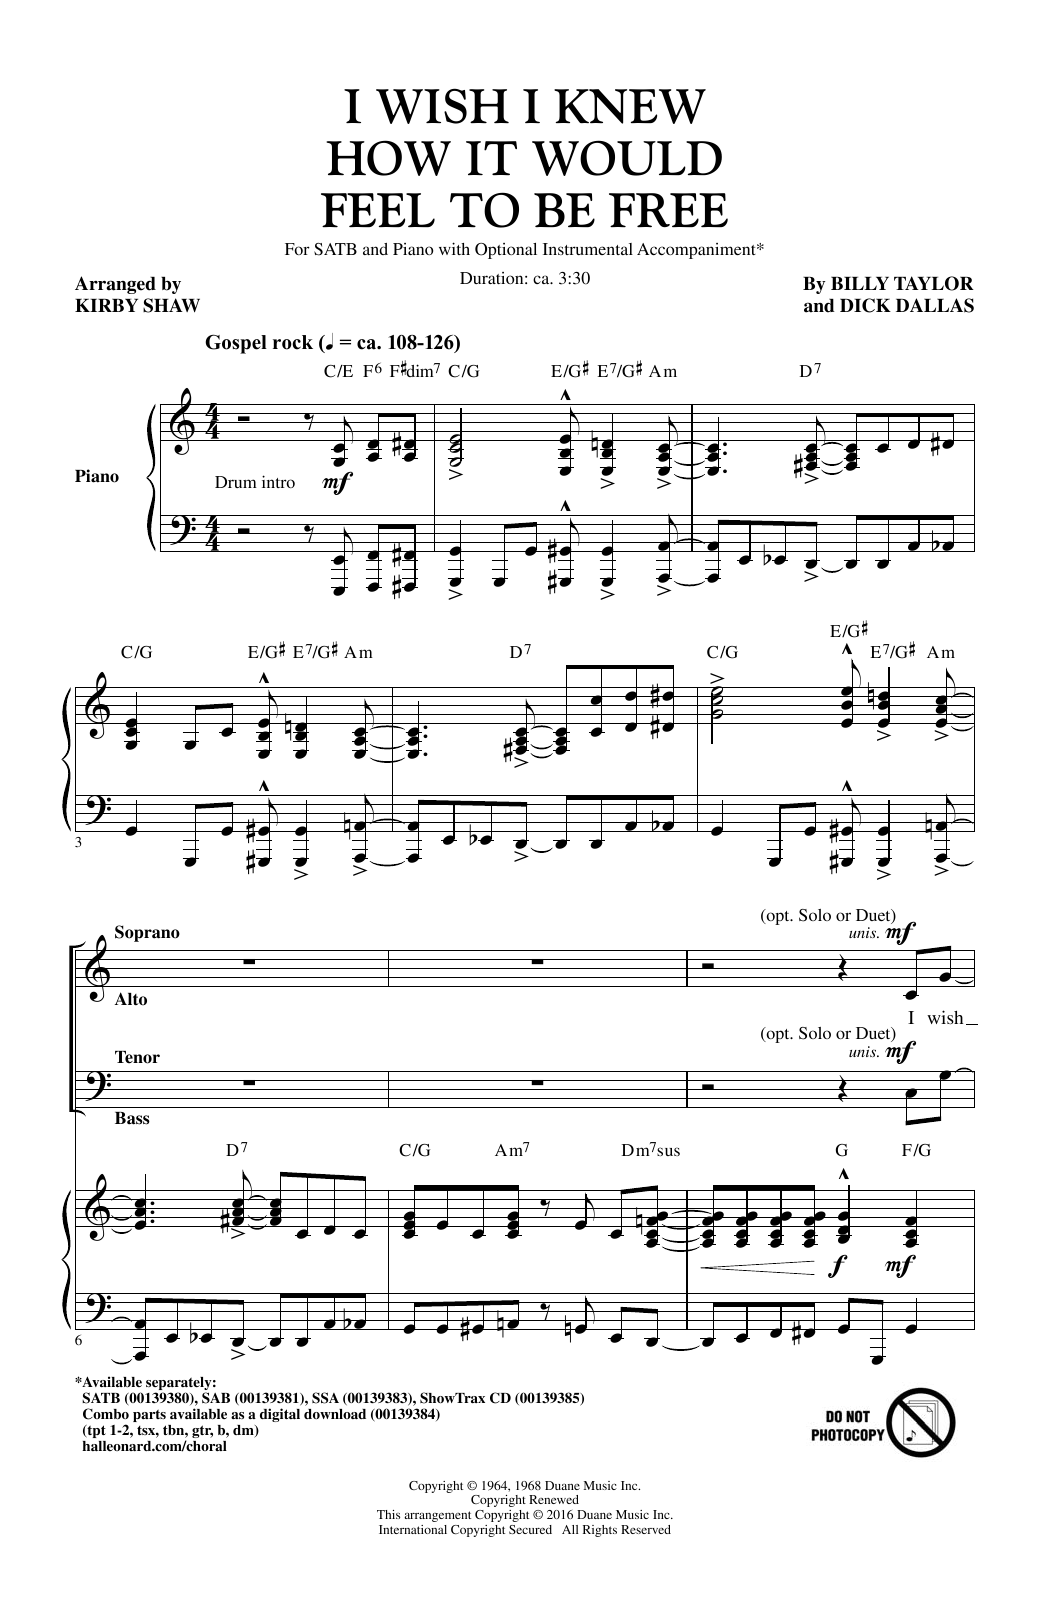 I Wish I Knew How It Would Feel To Be Free (arr. Kirby Shaw) Sheet Music